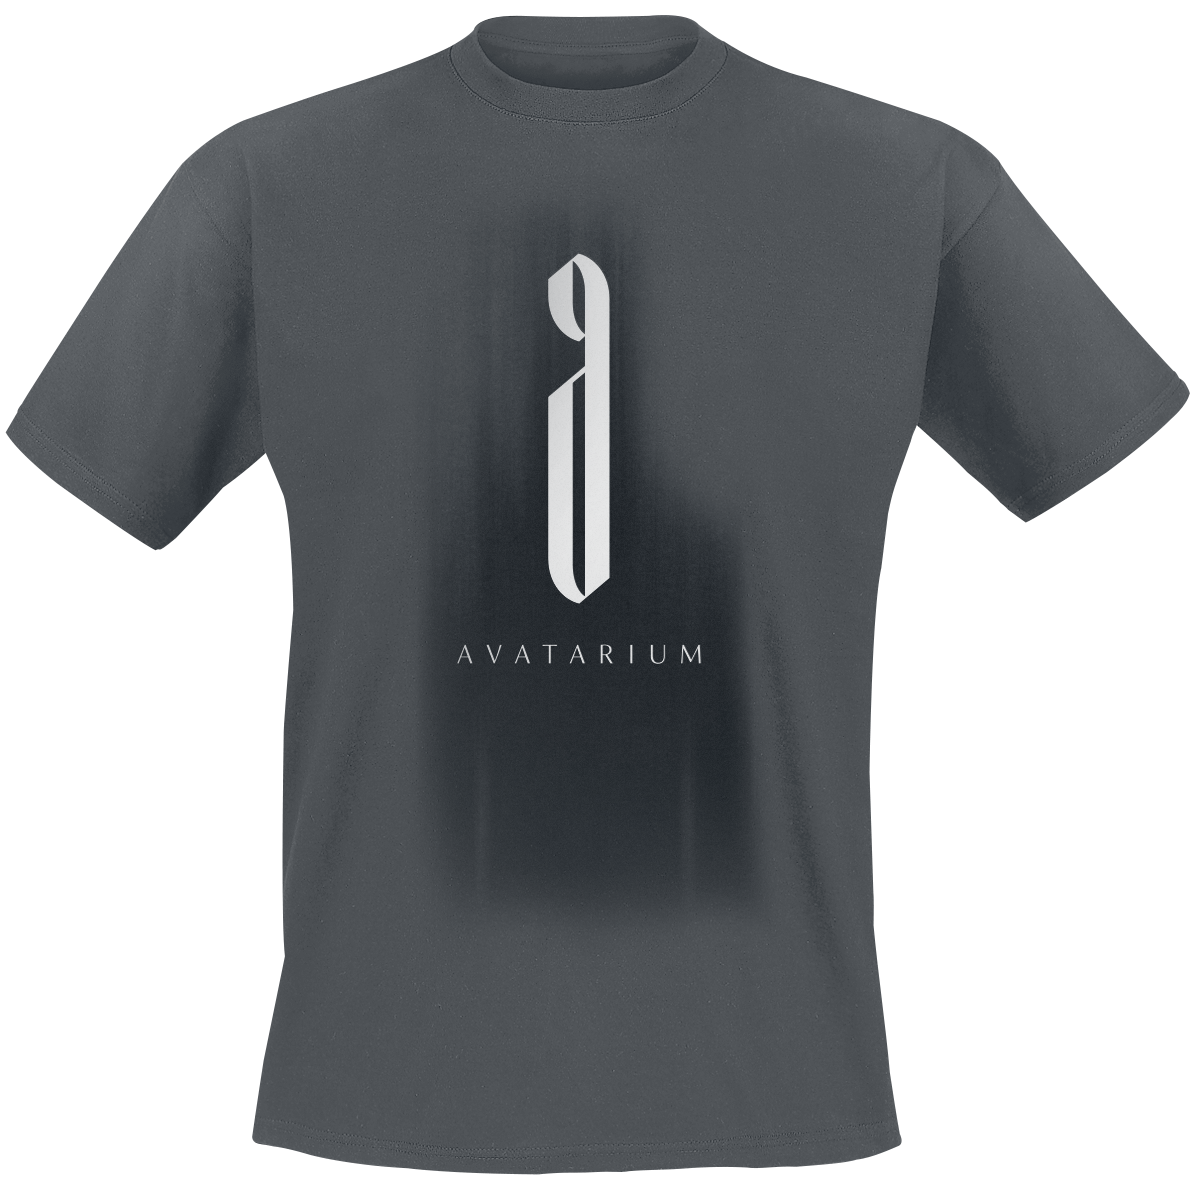 Avatarium - The Fire I Long For - T-Shirt - charcoal image